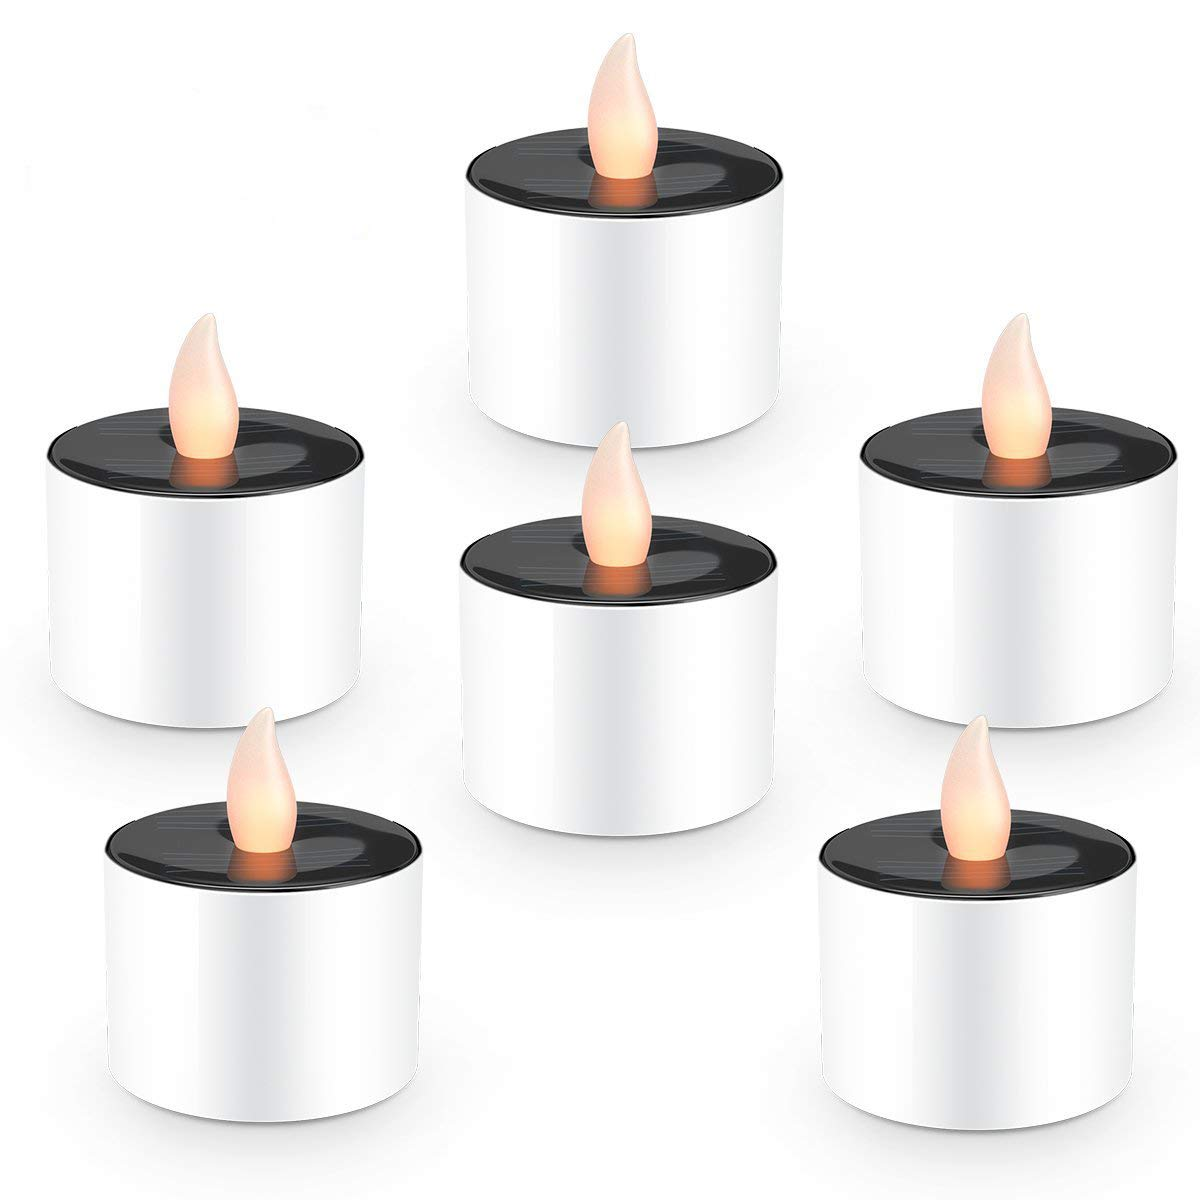 Solar Candles Flameless Rechargeable Candles LED Tea Lights Candles Battery Operated Upgraded Solar Power Waterproof Warm White Candle Set of 6 for Home Bar Bedroom Living Room Garden Outdoor Indoor by EXPOWER (Image #1)